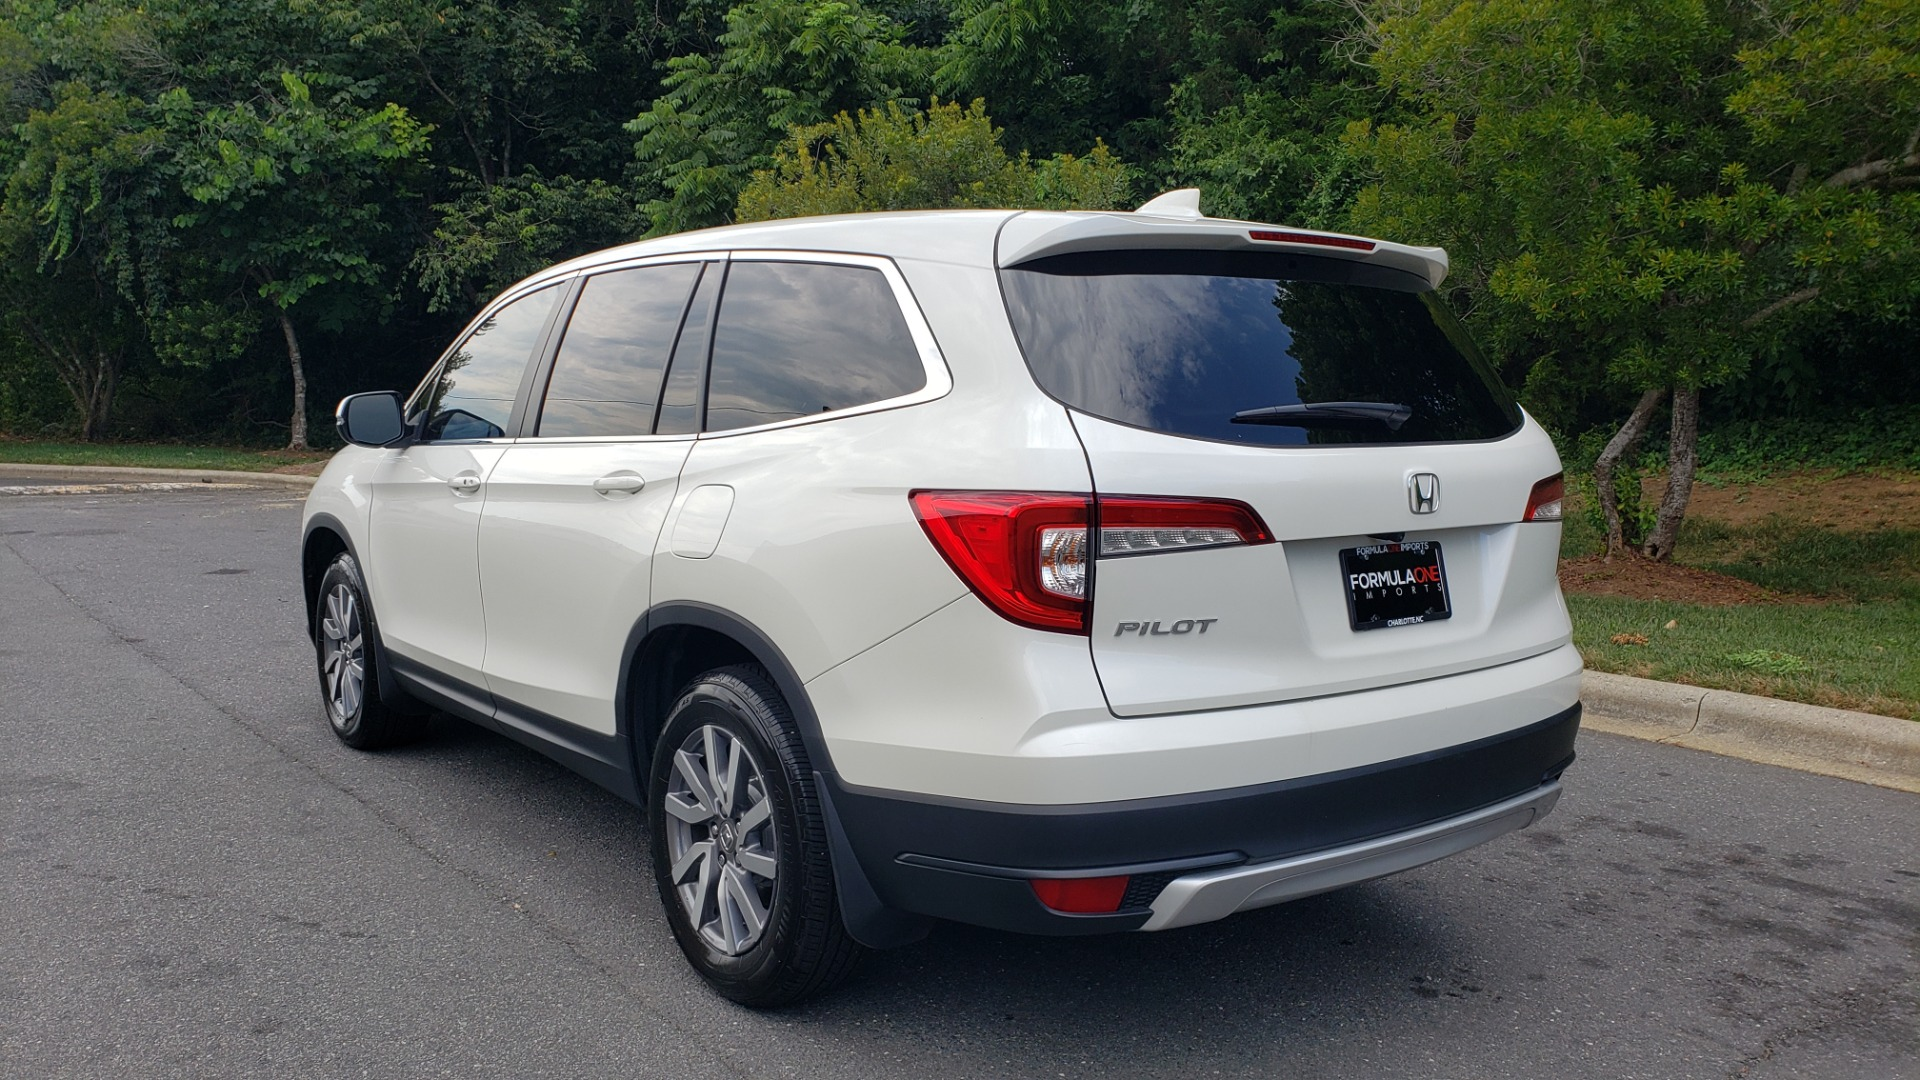 Used 2019 Honda PILOT EX-L / V6 / NAV / SUNROOF / DVD / 3-ROW / REARVIEW for sale Sold at Formula Imports in Charlotte NC 28227 3